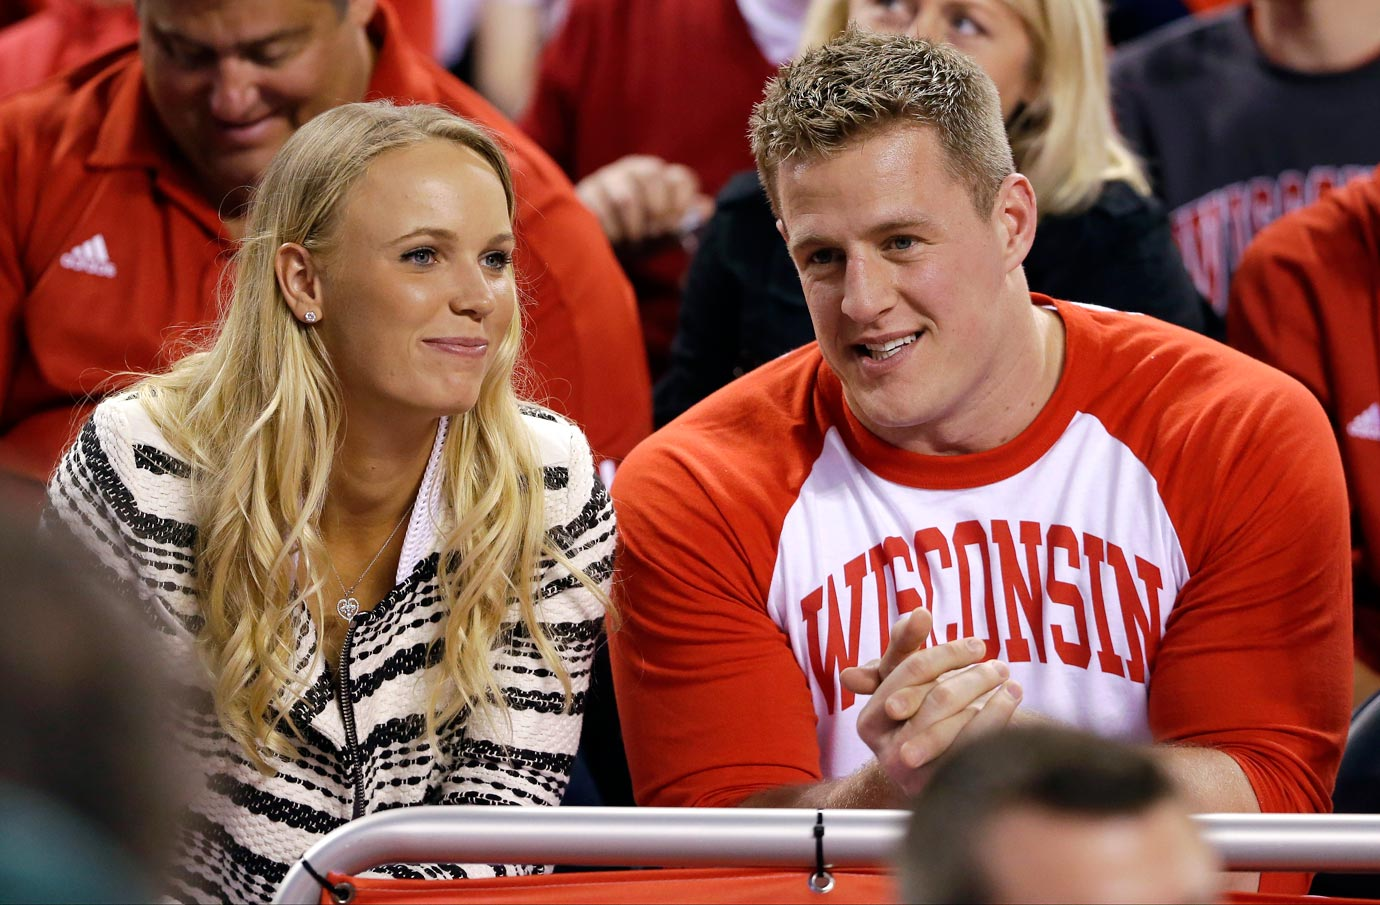 Tennis star Caroline Wozniacki and NFL defensive end J.J. Watt were seen together at the NCAA men's basketball national championship game between Wisconsin and Duke on April 6, 2015 in Indianapolis, leading to much speculation as to whether or not the two were a couple. After the two were spotted enjoying a private weekend in Fisher Island, Fla., and Watt was seen in Paris supporting Woz at the French Open, the speculation was over.